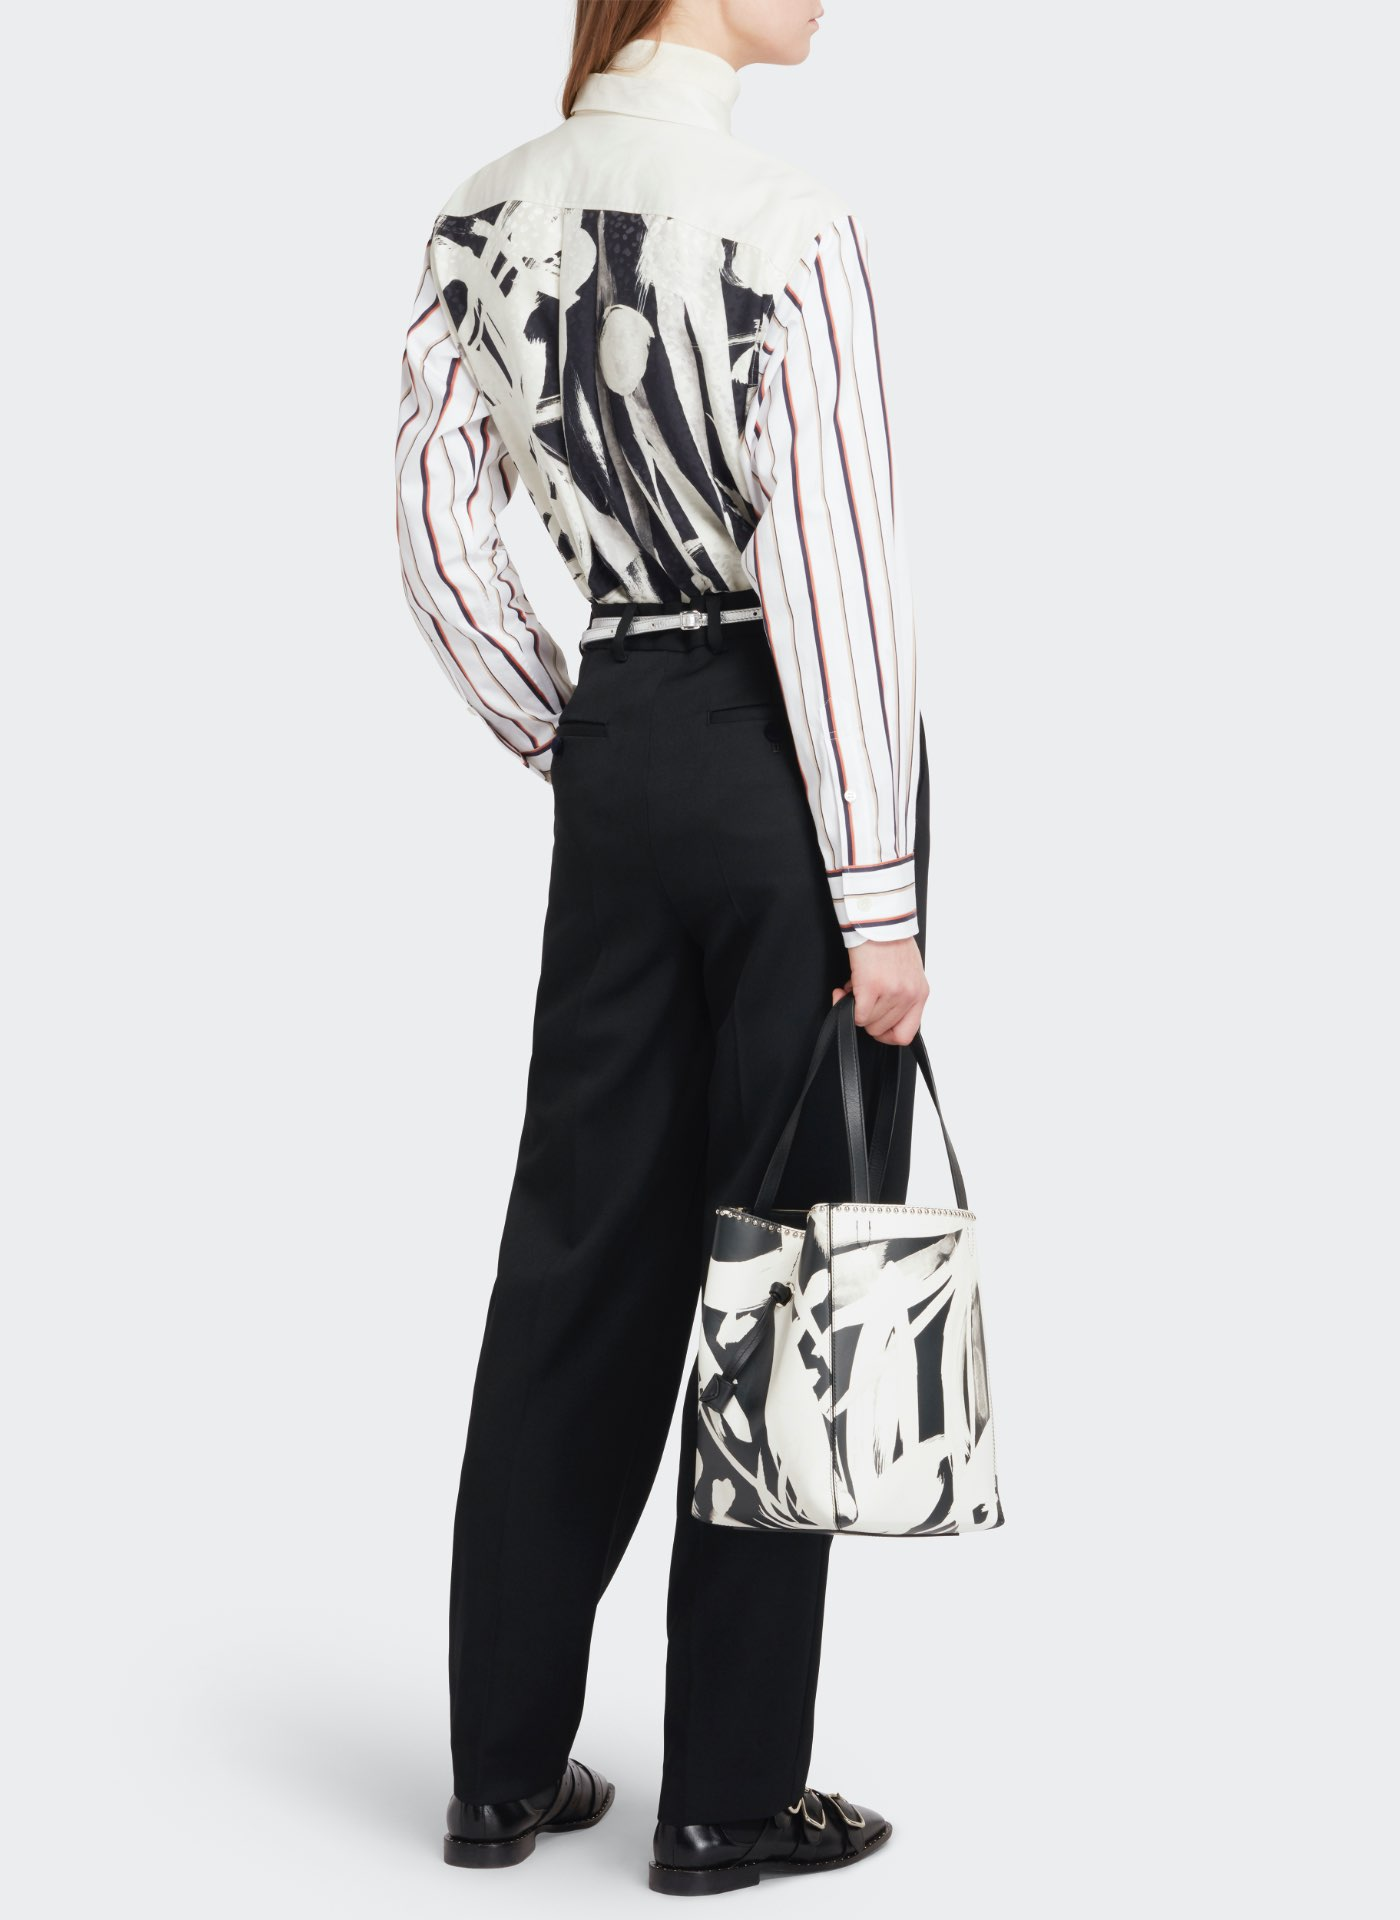 Womenswear model wearing black trousers and white and black pattern shirt with a black and white pattern leather bag